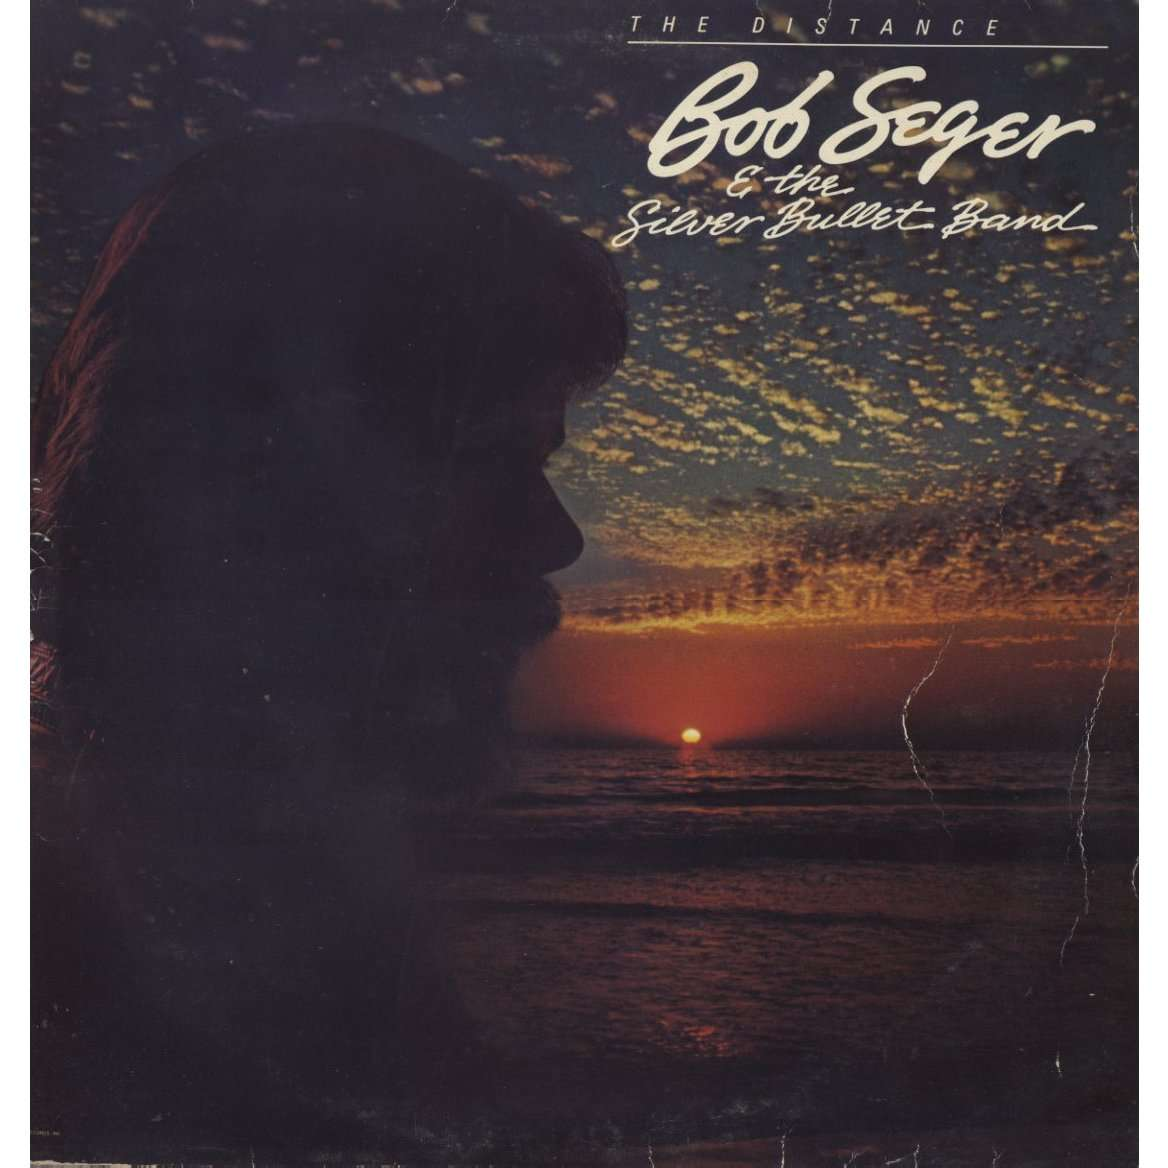 seger, bob silver bullet band - The distance